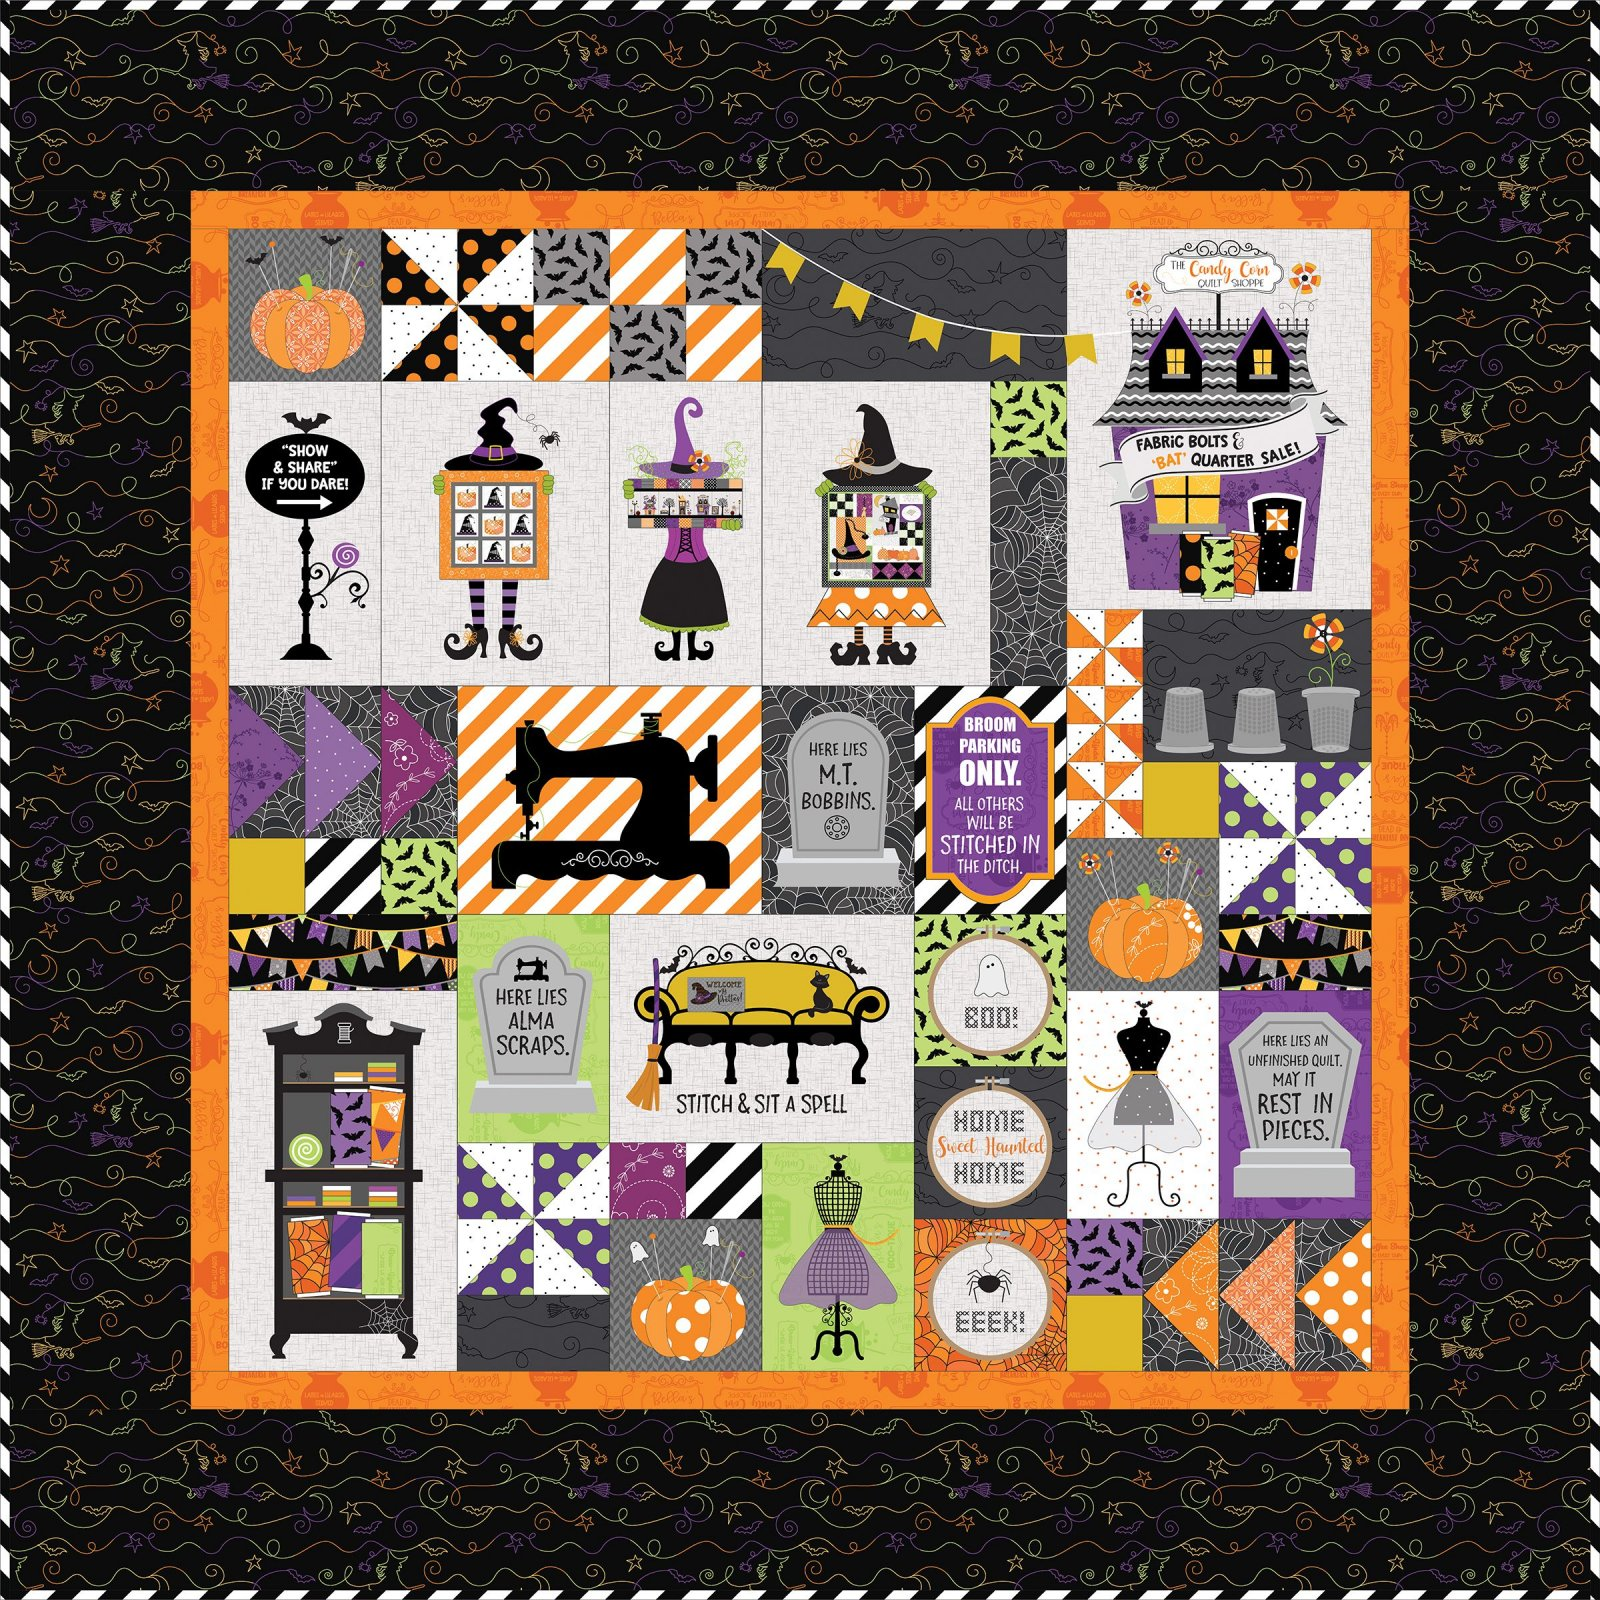 EESC-KITMASHTH - HOMETOWN HALLOWEEN - CANDY CORN QUILT SHOP KIT - FABRIC ONLY - ARRIVING IN JULY 2021